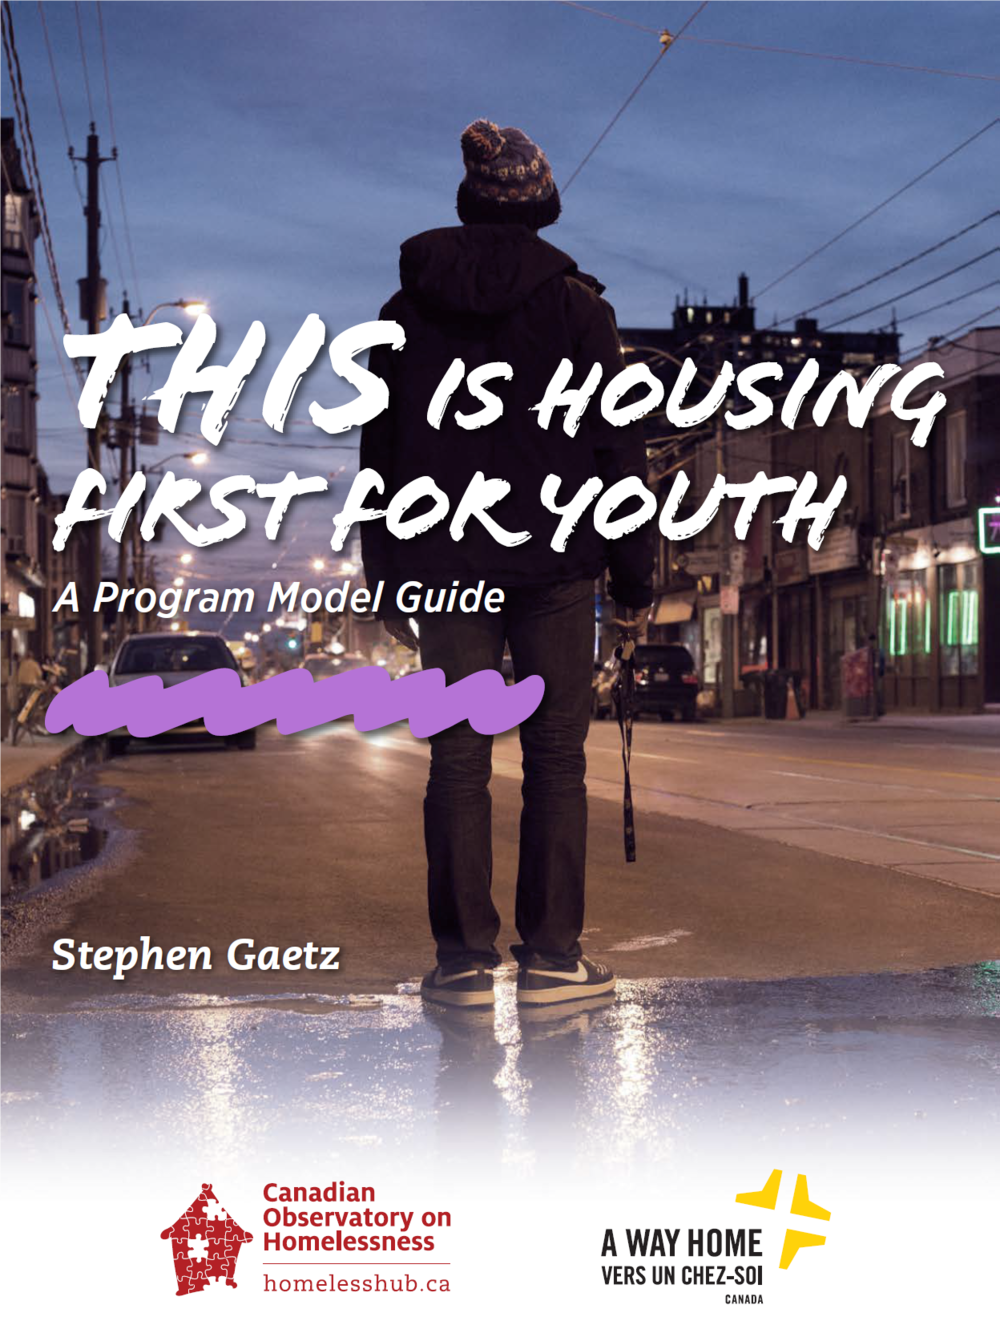 Housing First for Youth